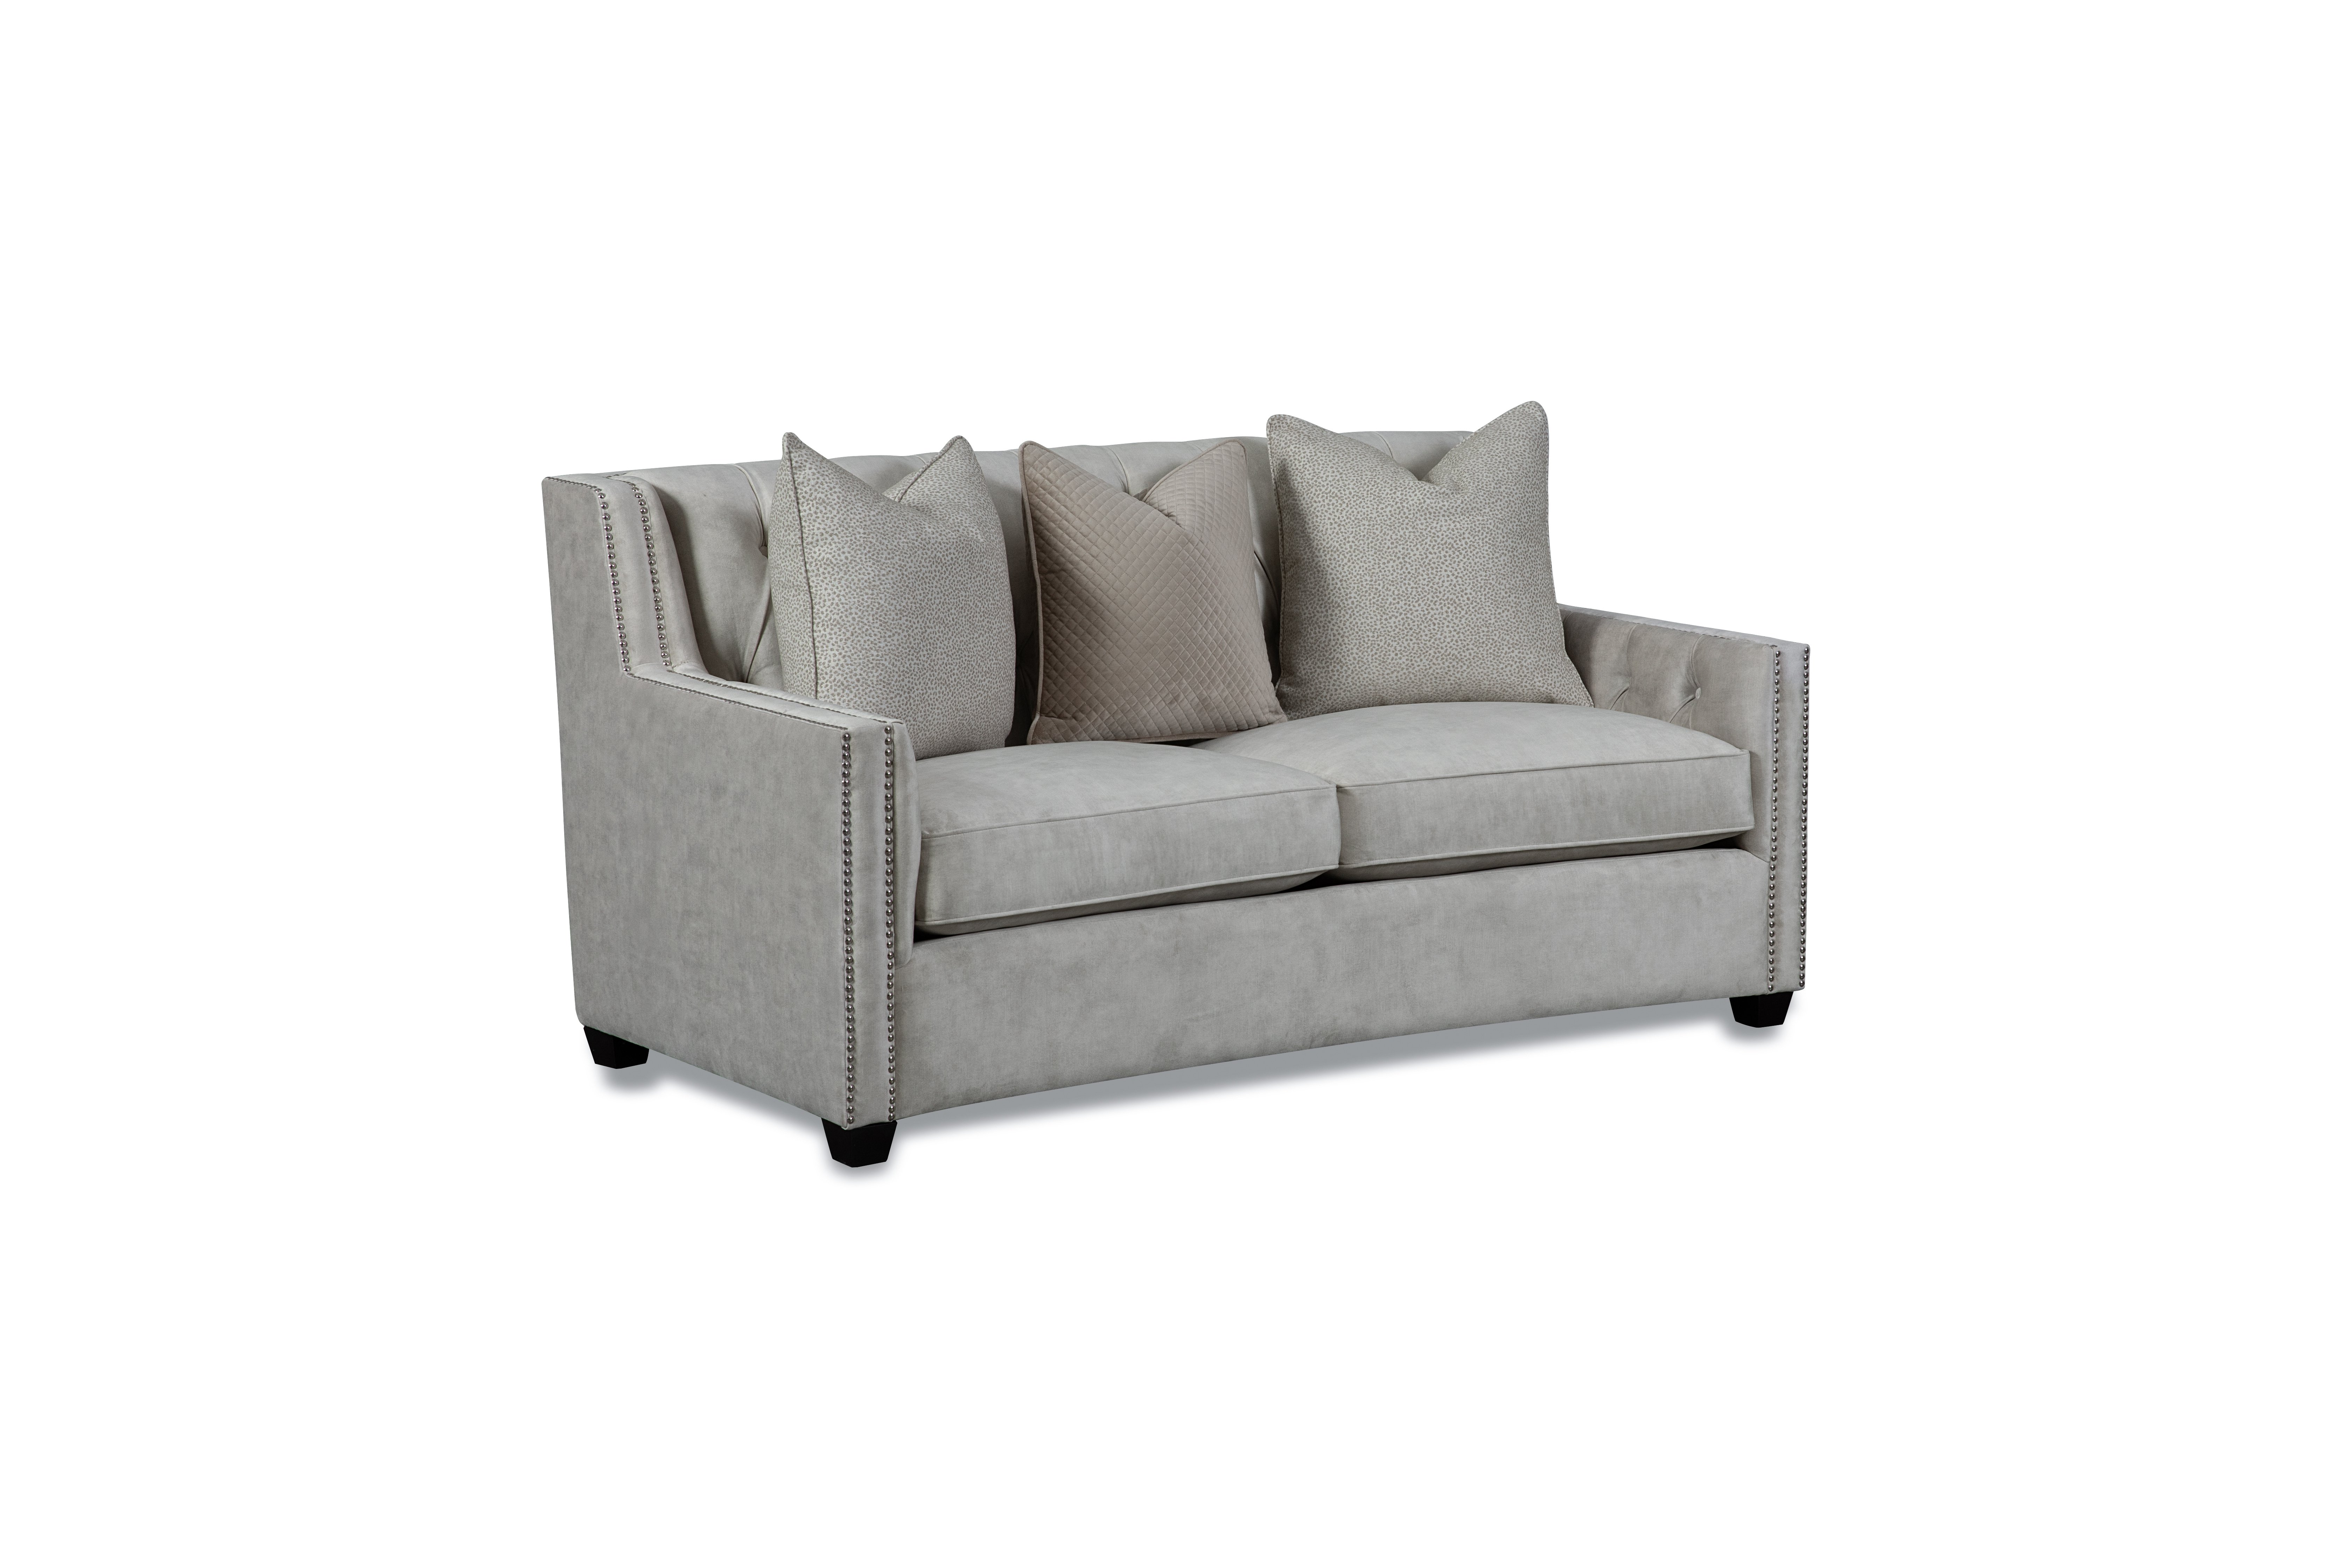 GetPhotoSigned?name=45-RR354L-0%20LOVESEAT%206370B%20%2342%20921%20FOR%20ANGLE%20JPG.jpg&nameSignature=b7186b17ccaf1e53371399925fb20896695c9c5373689c&versionId=13778&force_allow_caching=1&cache_buster